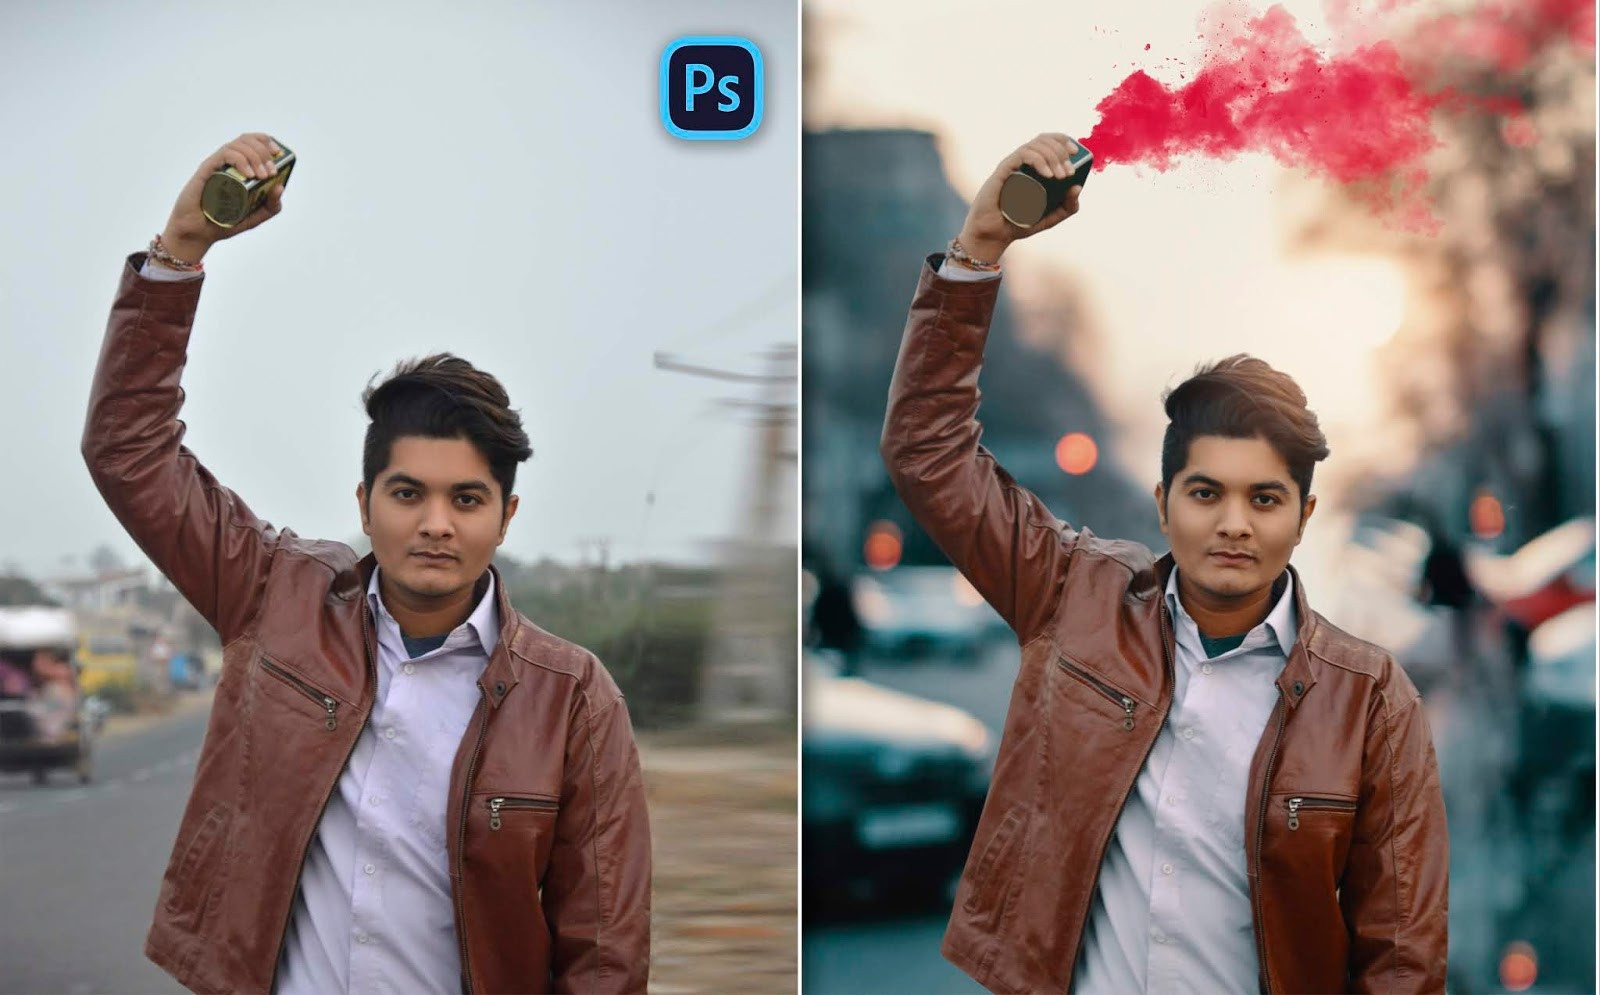 2019 | Color Smoke Bomb Photo Editing for Instagram in Photoshop | How to do Color Smoke Bomb Photo Manipulation